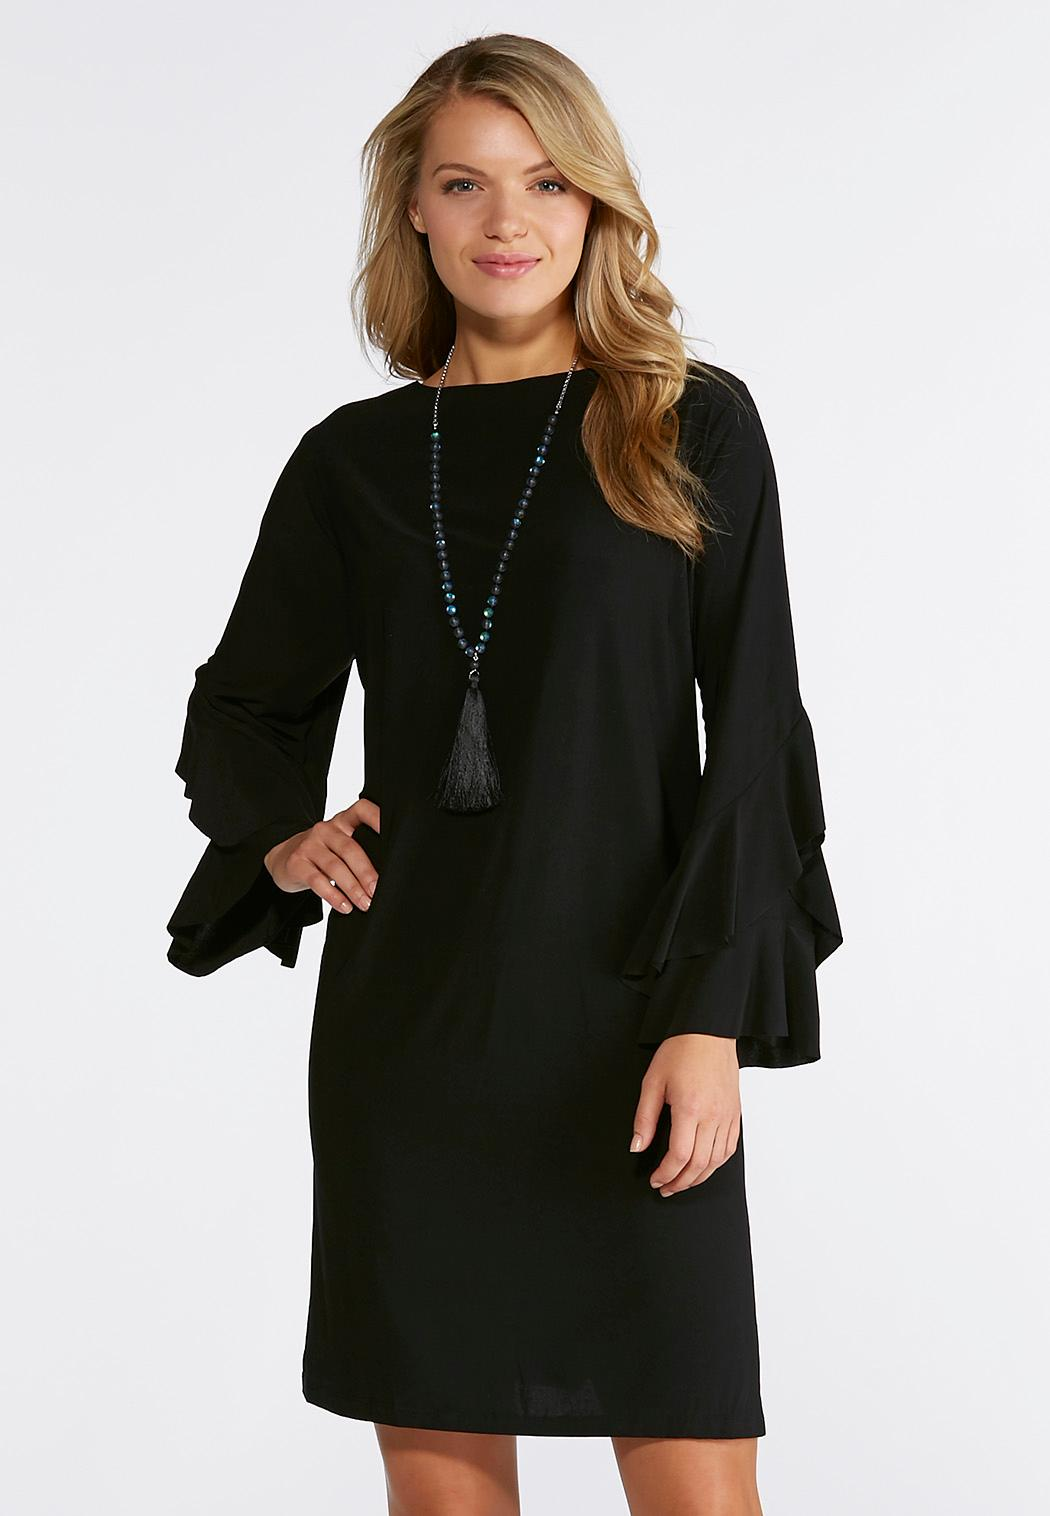 Plus Size Bell Sleeve Knit Dress Dresses Cato Fashions